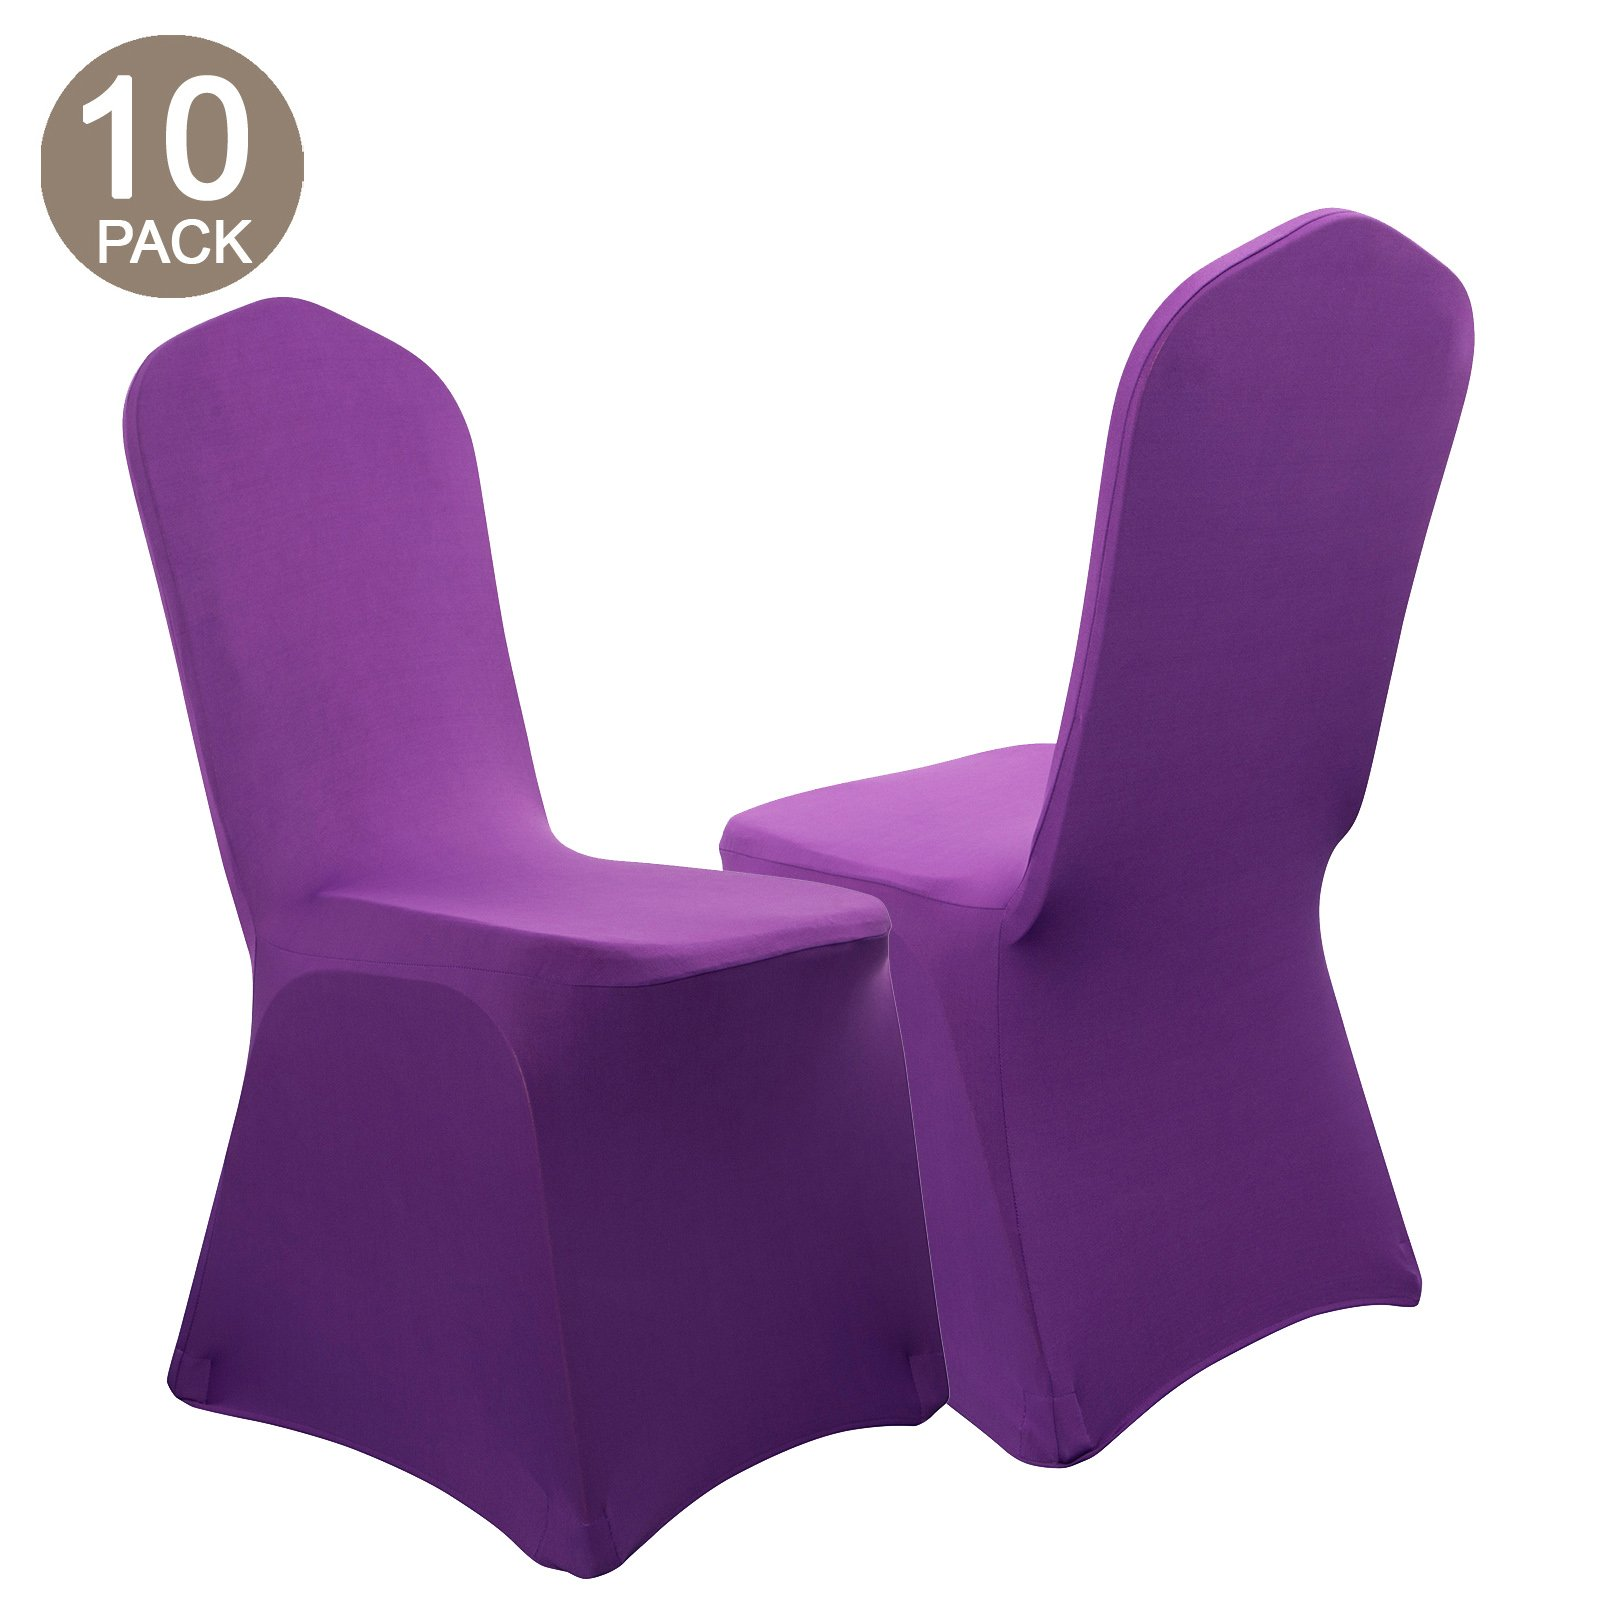 VEEYOO Set of 10 Universal Polyester/Spandex Fitted Stretch Chair Cover for Wedding Party Banquet Dining Room, Purple, Flat Front